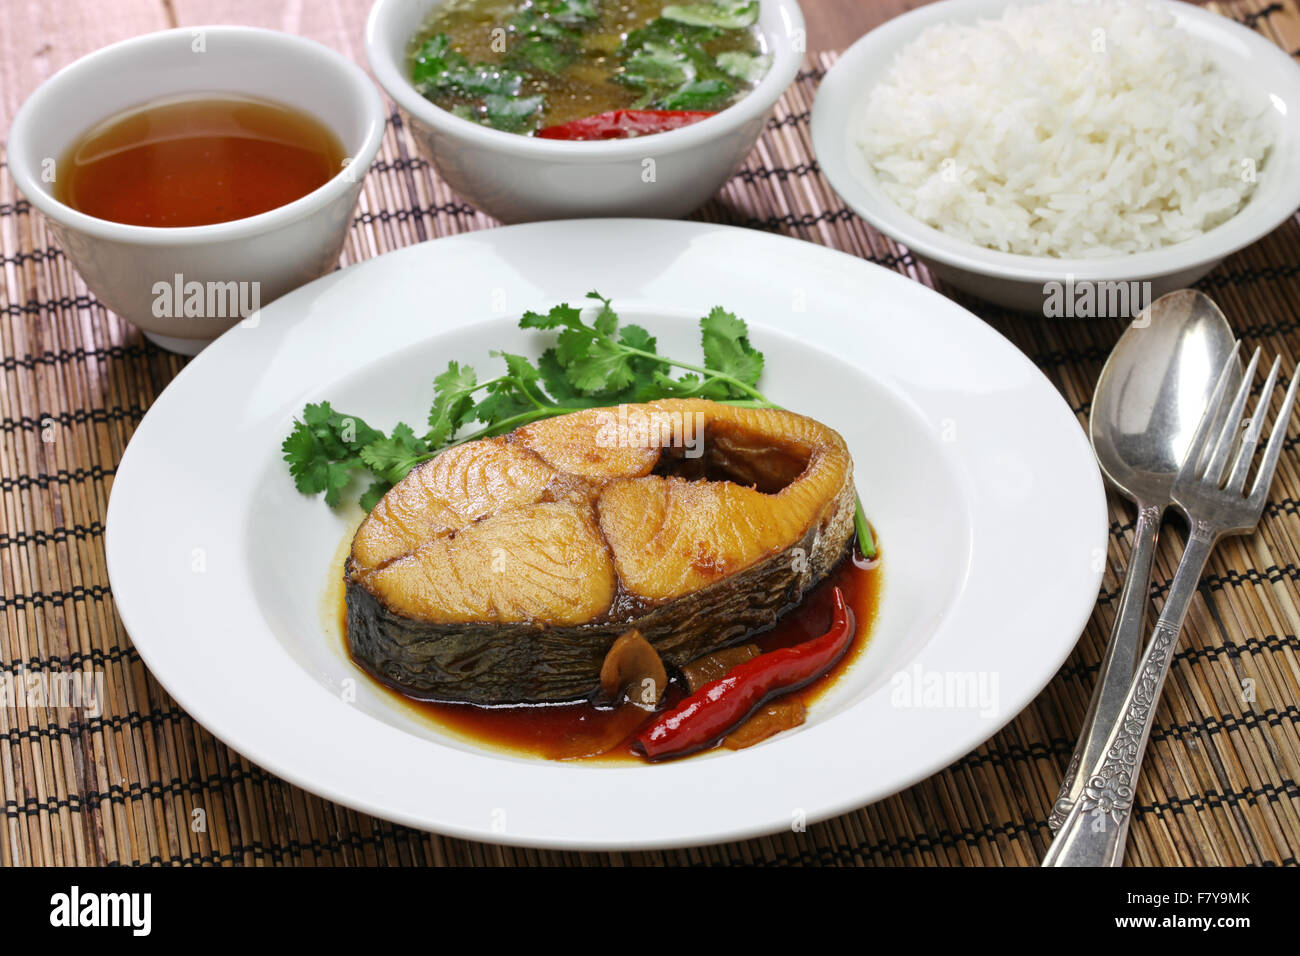 com ca thu kho, rice with king mackerel simmered in caramelized sauce, vietnamese cuisine - Stock Image